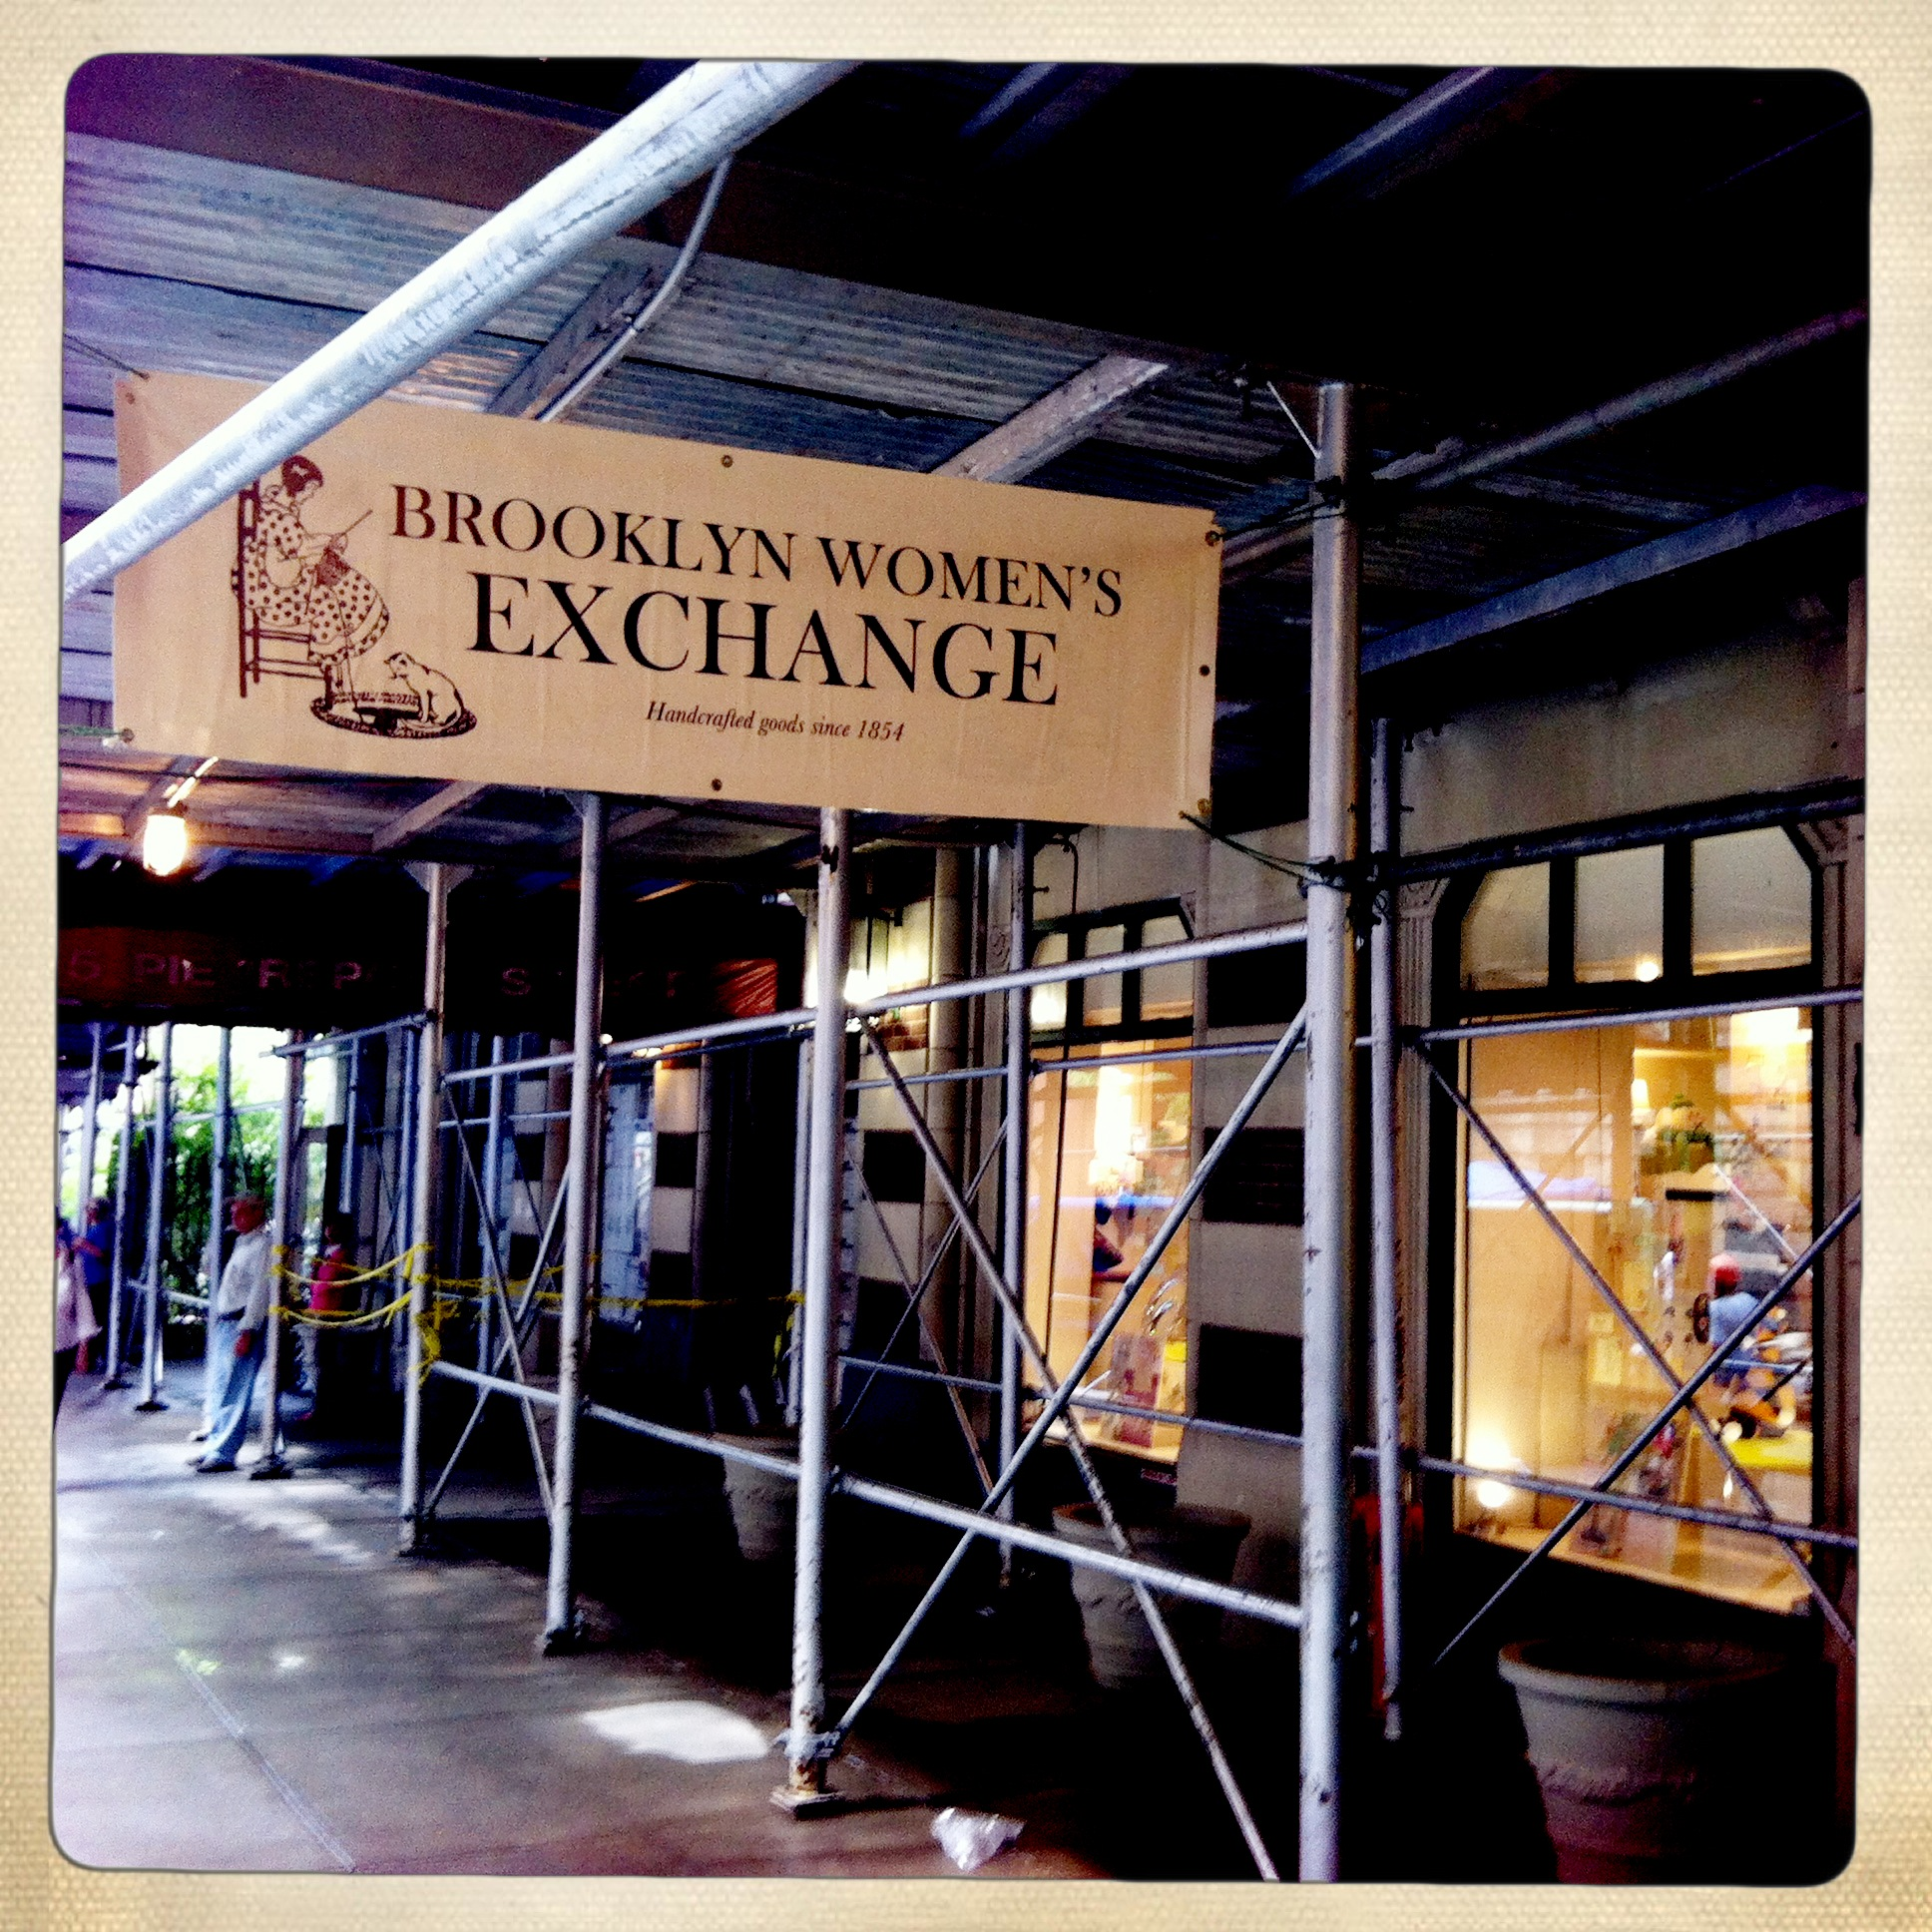 Brooklyn Women's Exchange